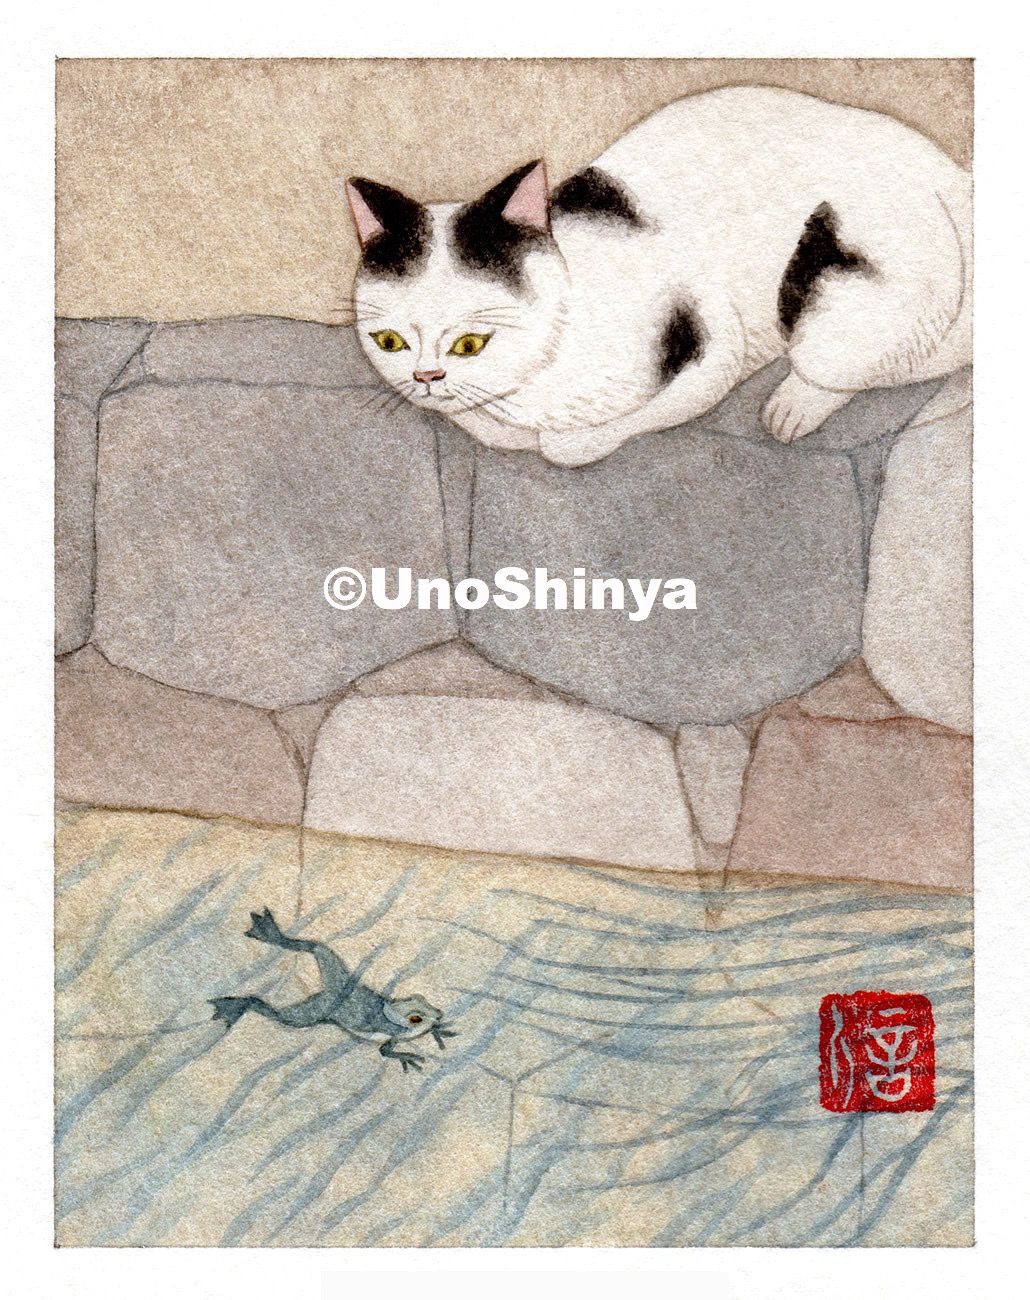 「Cats&Frag 猫と蛙」| shinya uno illustration